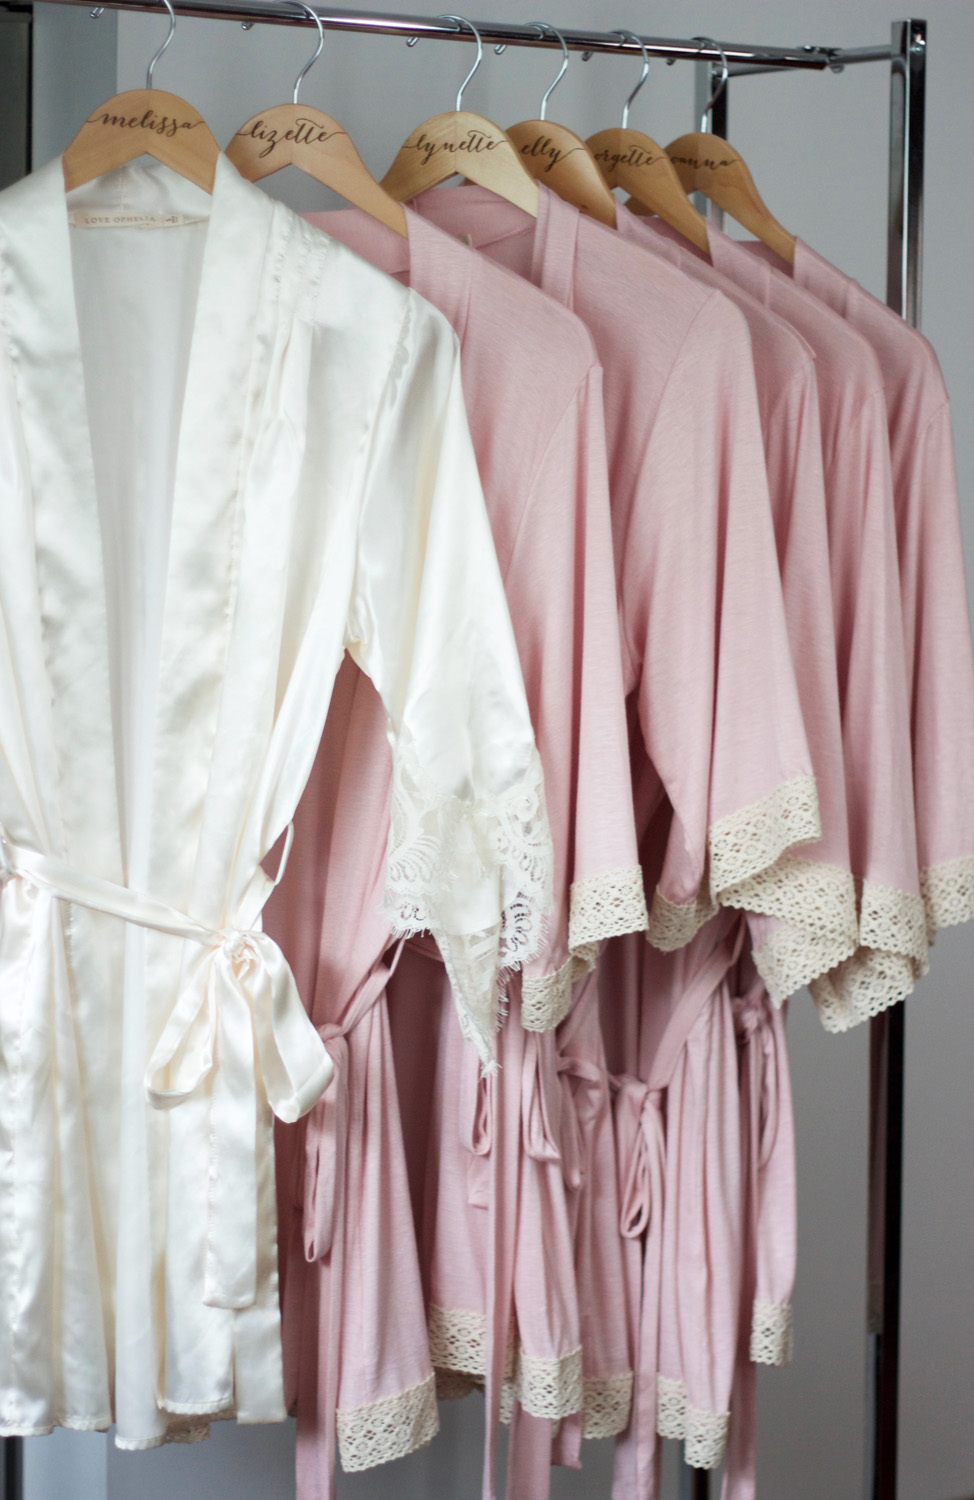 melrodstyle, wedding, bridesmaids, gifts, bride robes, wedding hangers, bridesmaids clutch, bride, brides, trending, the knot, smh wedding, love ophelia